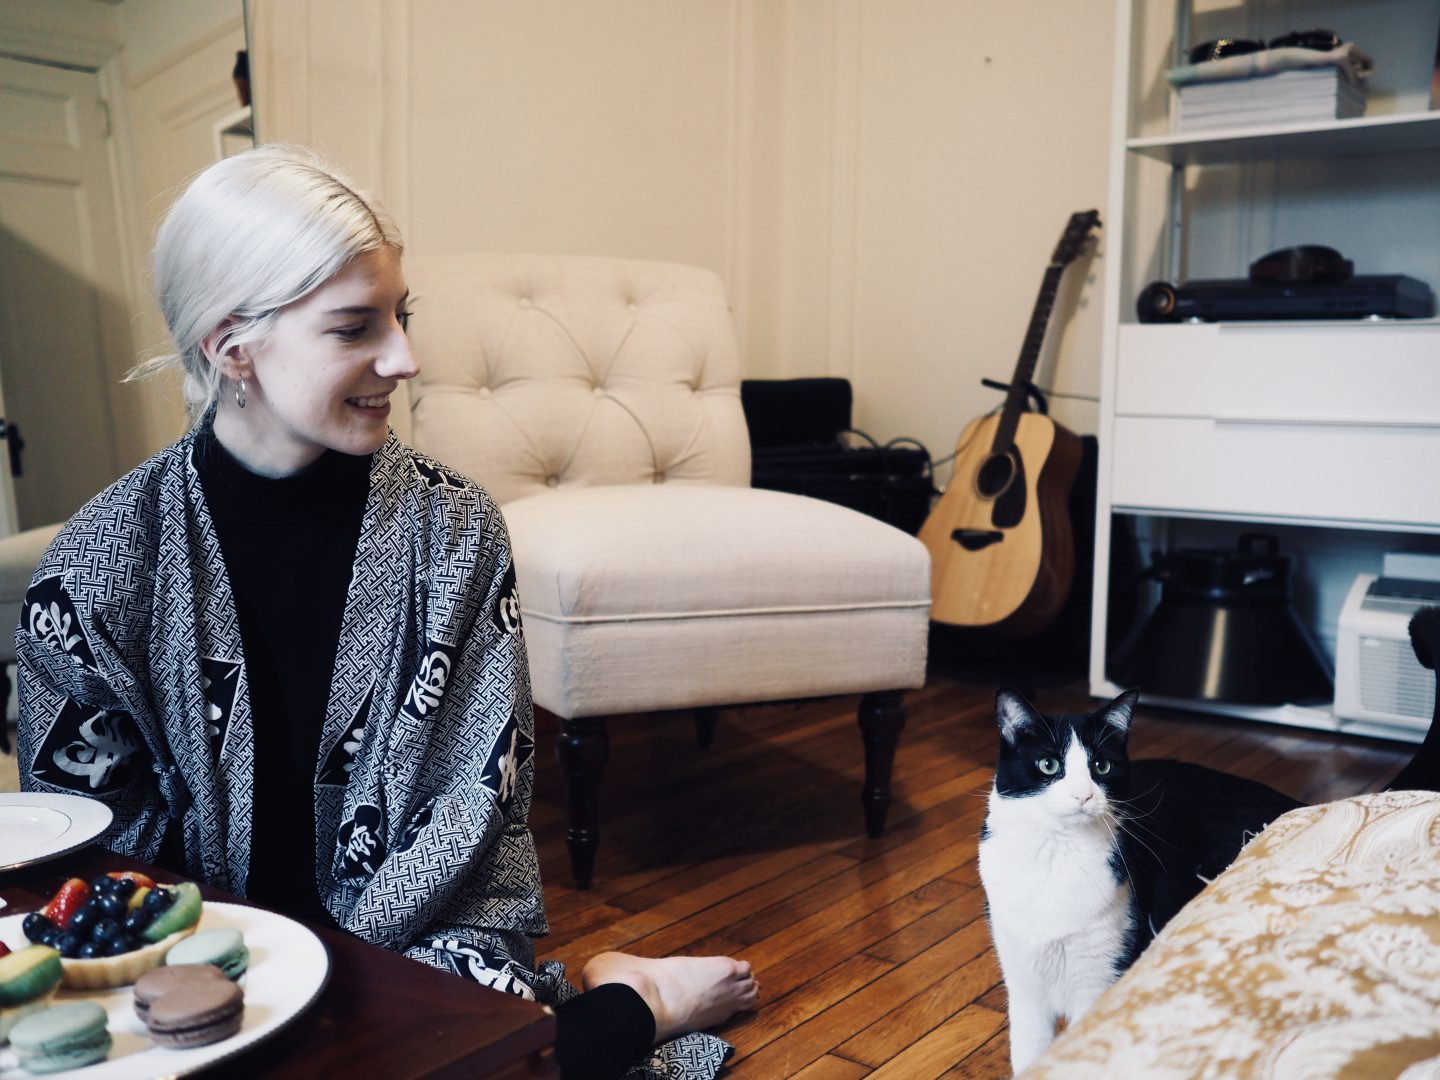 Interview Maria Lee: The Resolute Capsule Wardrobe Practitioner